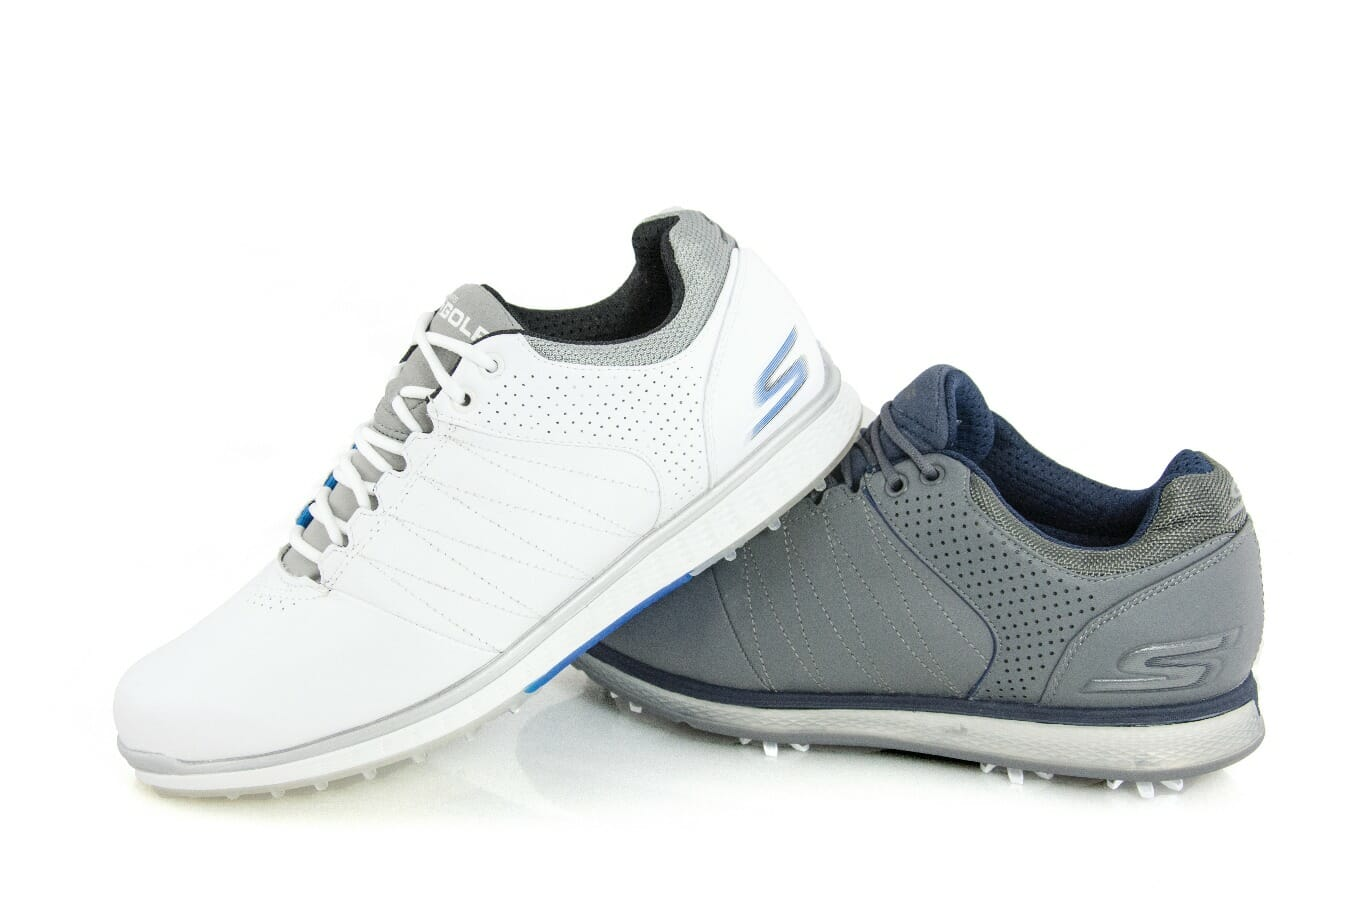 21f6719492 Skechers have announced the launch of the all-new 2017 GoGolf shoe  collection.